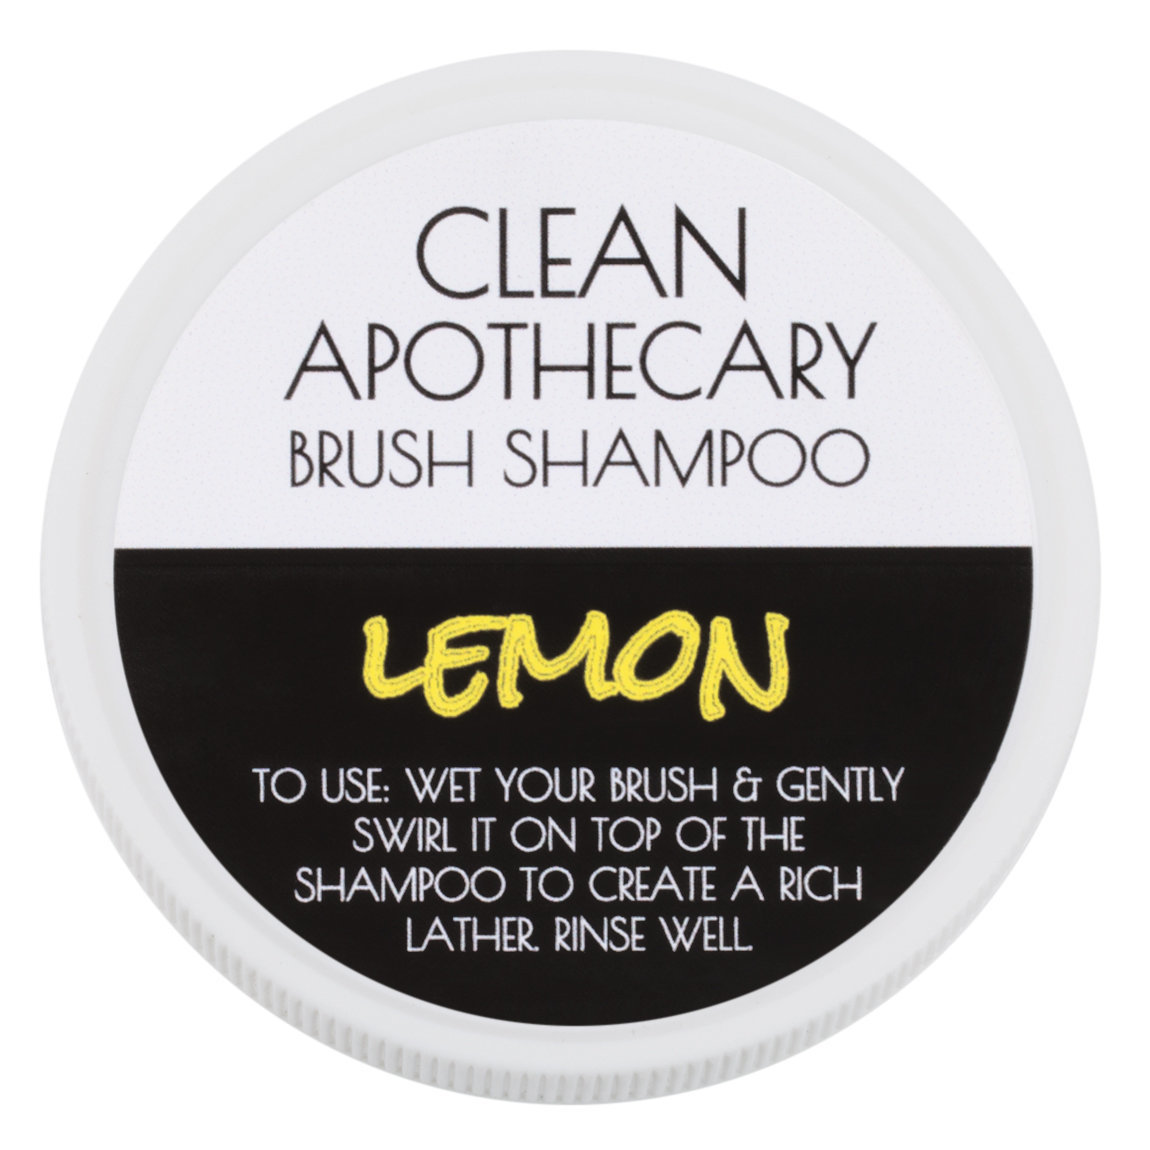 Clean Apothecary Brush Shampoo Lemon product swatch.